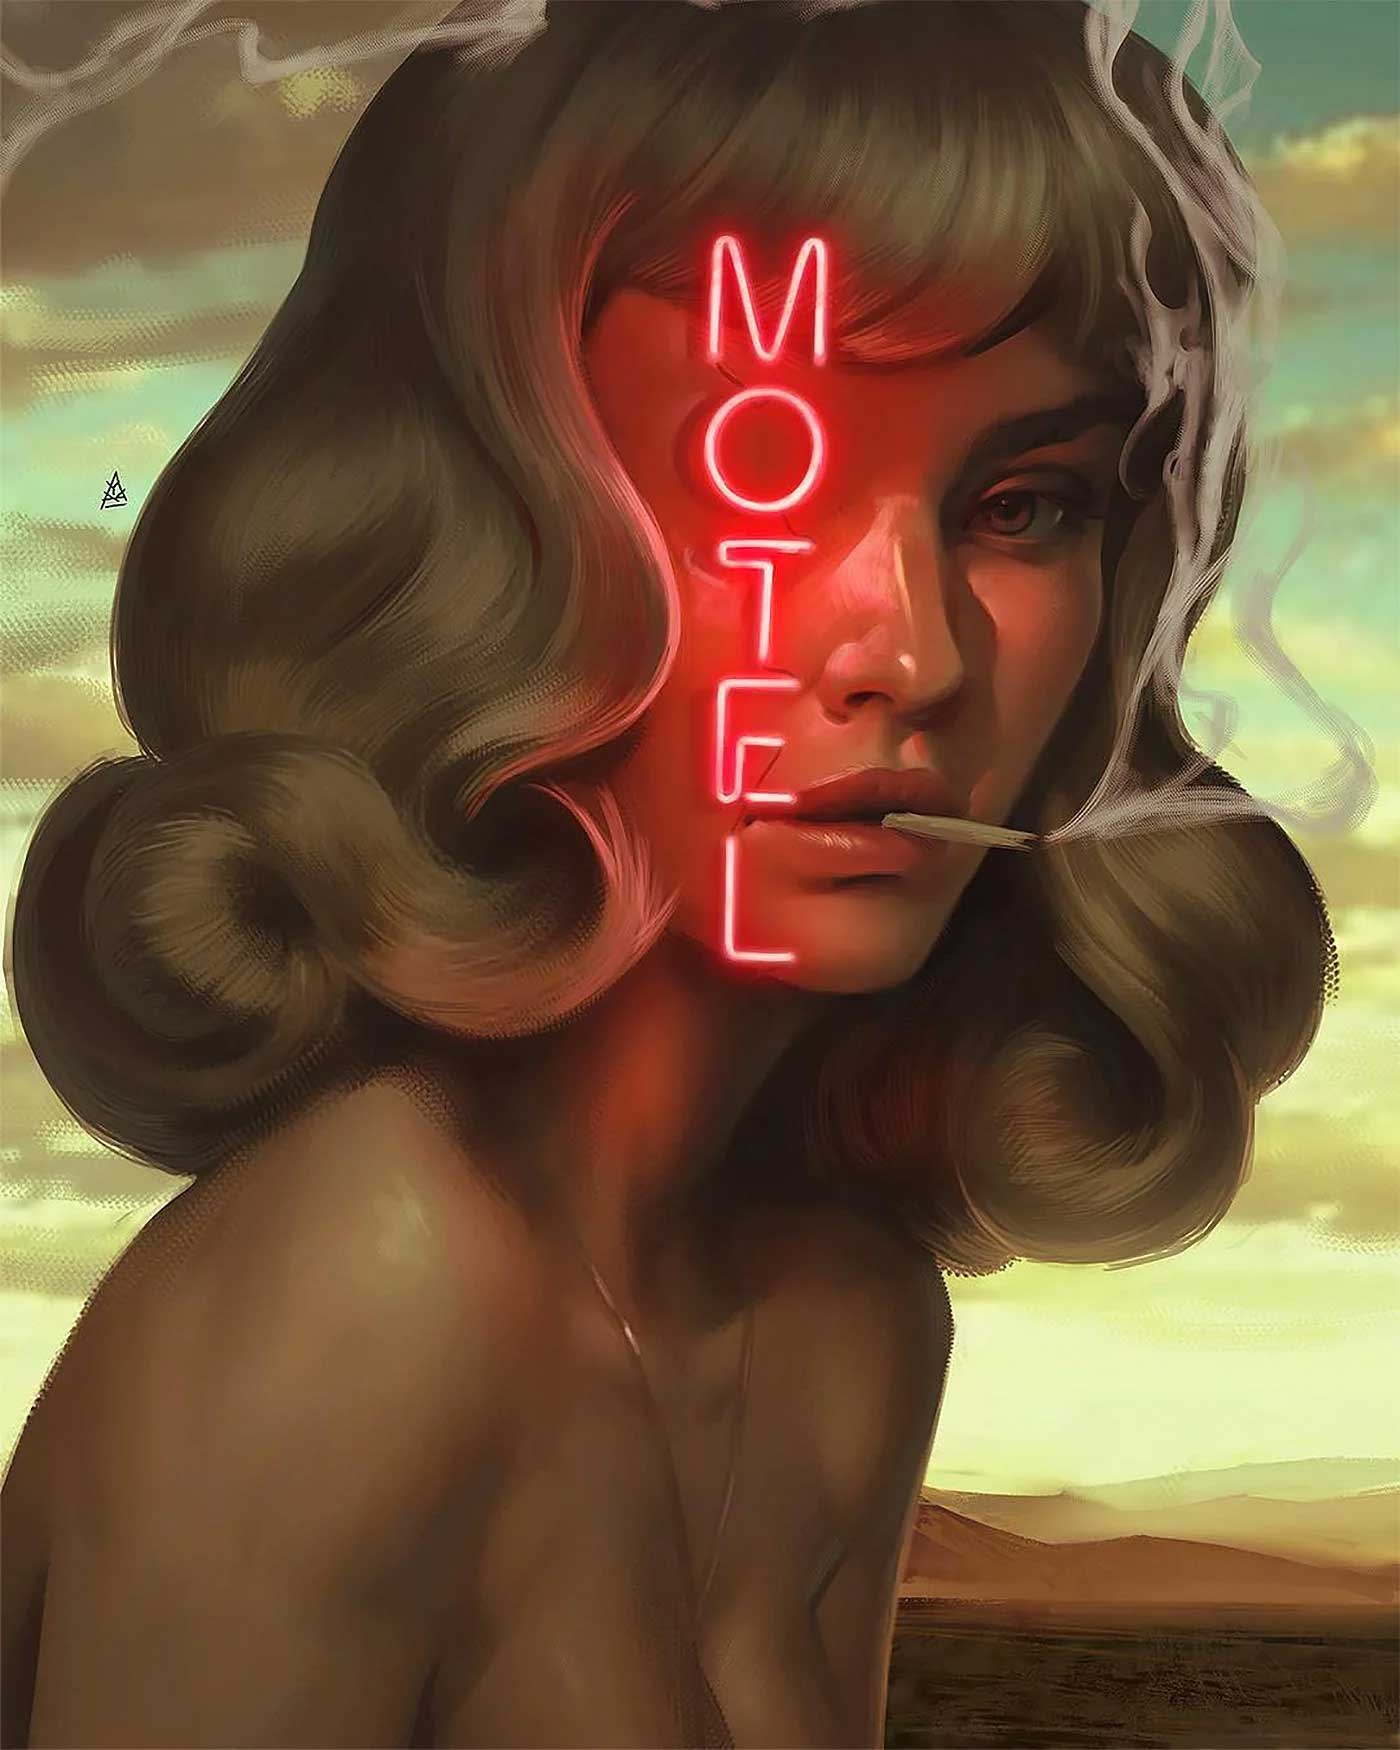 Neue surreale Digital Paintings von Aykut Aydogdu Aykut-Aydogdu-surreale-digital-paintings_2020_03